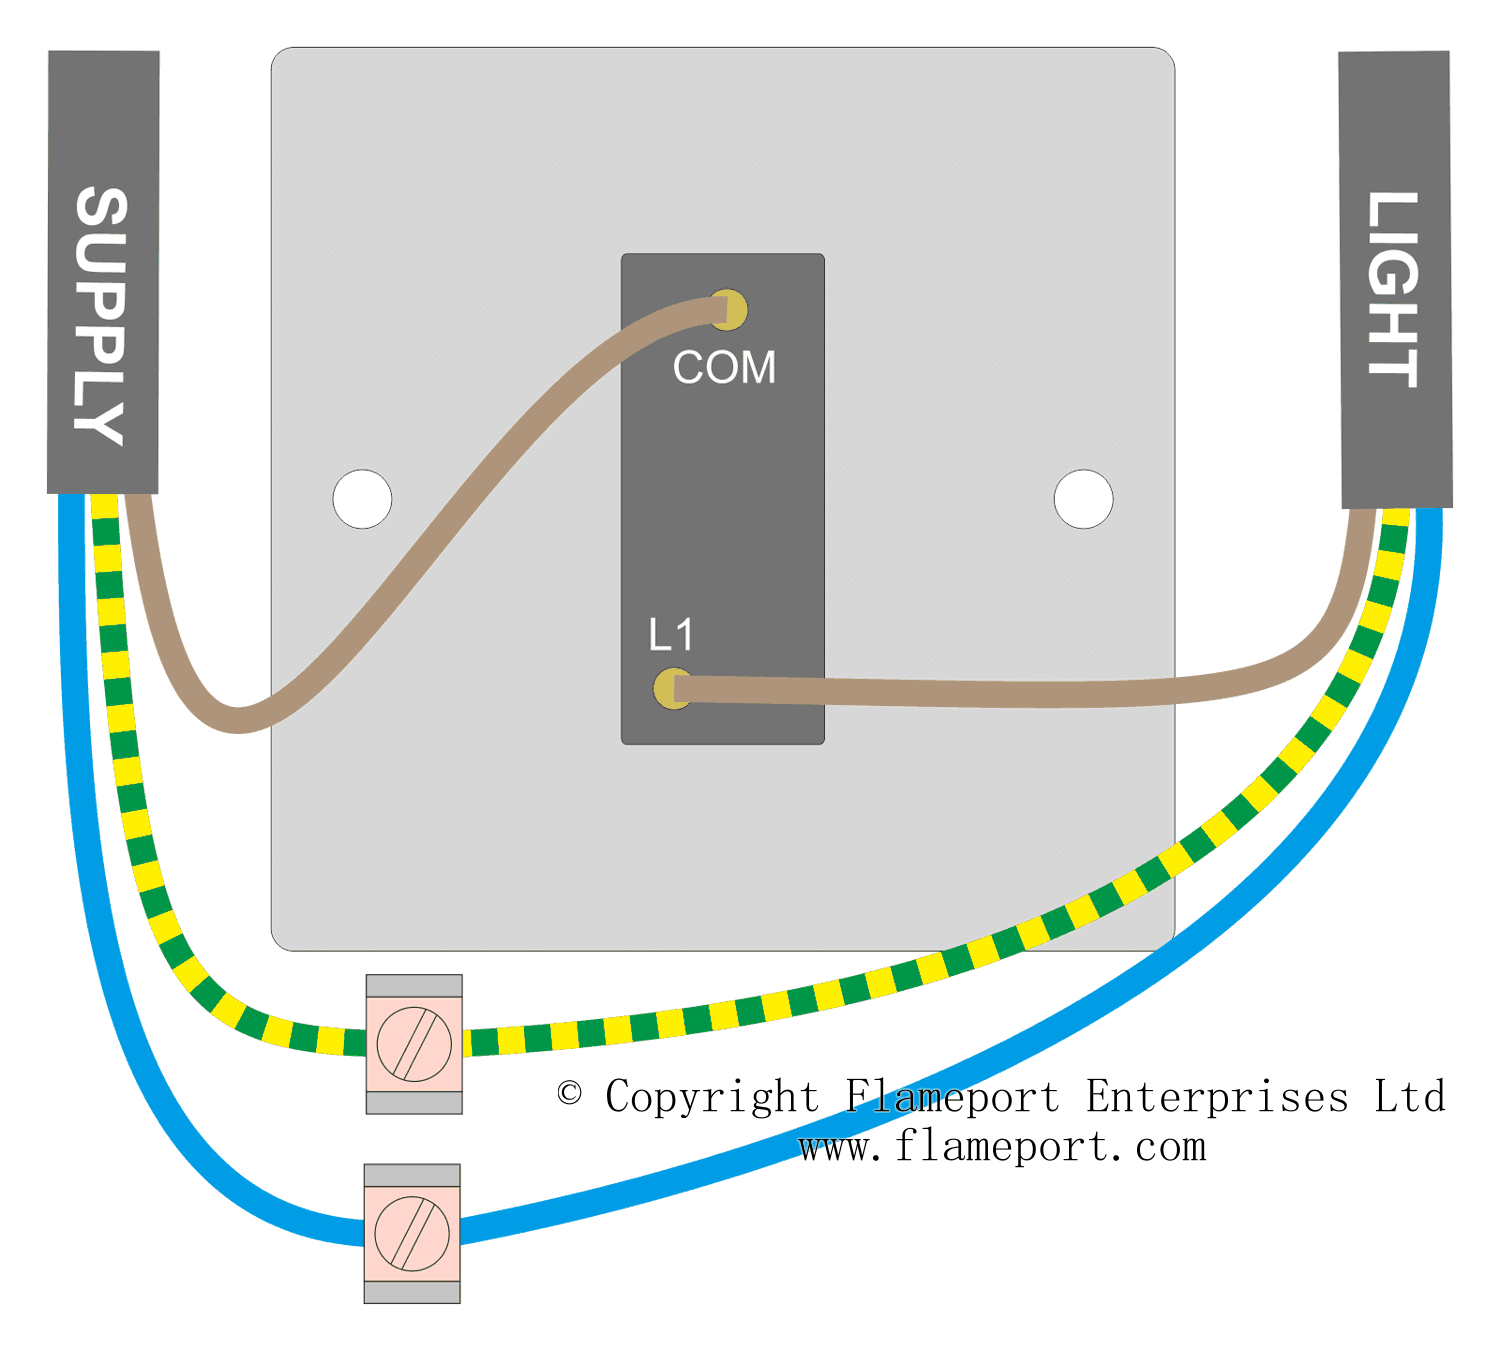 Wiring For A Single Loft Or Garage Light - Wiring Diagram For Light Switch